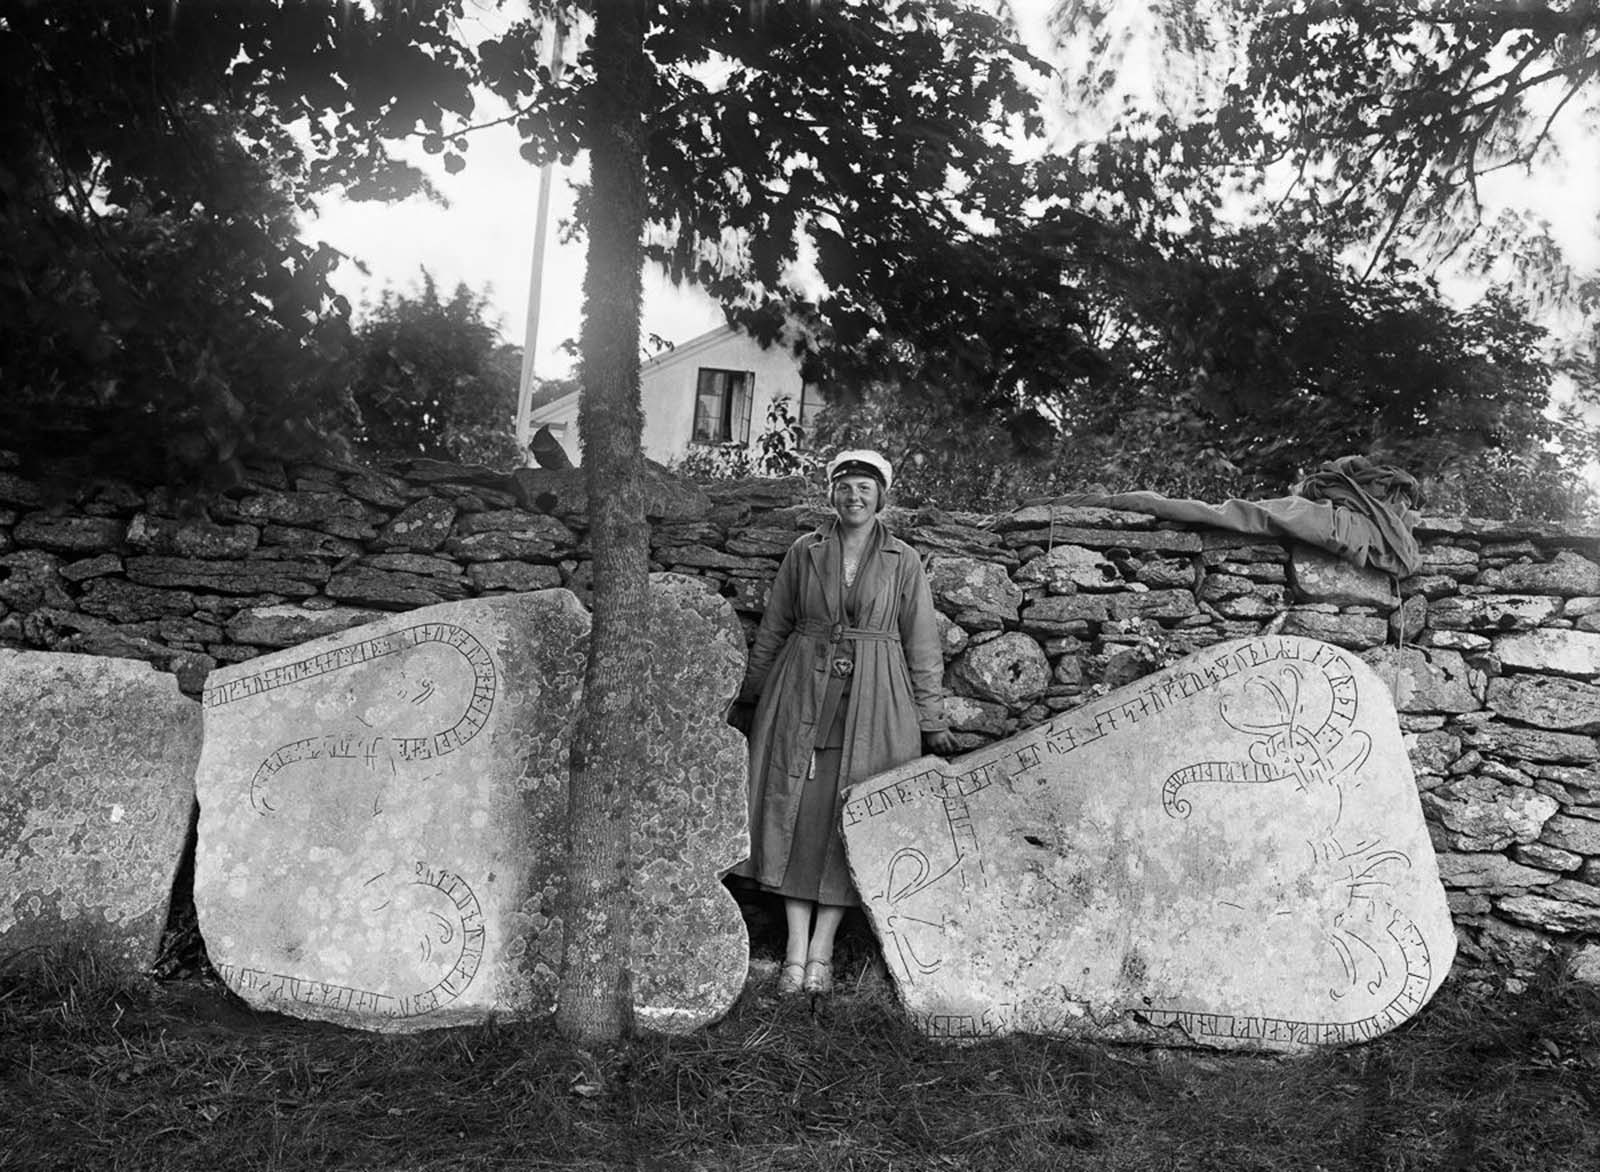 Gunnel Hamner, daughter of photographern J.W. Hamner, poses with runestones at Stenkumla church on the island of Gotland. One stone reads,